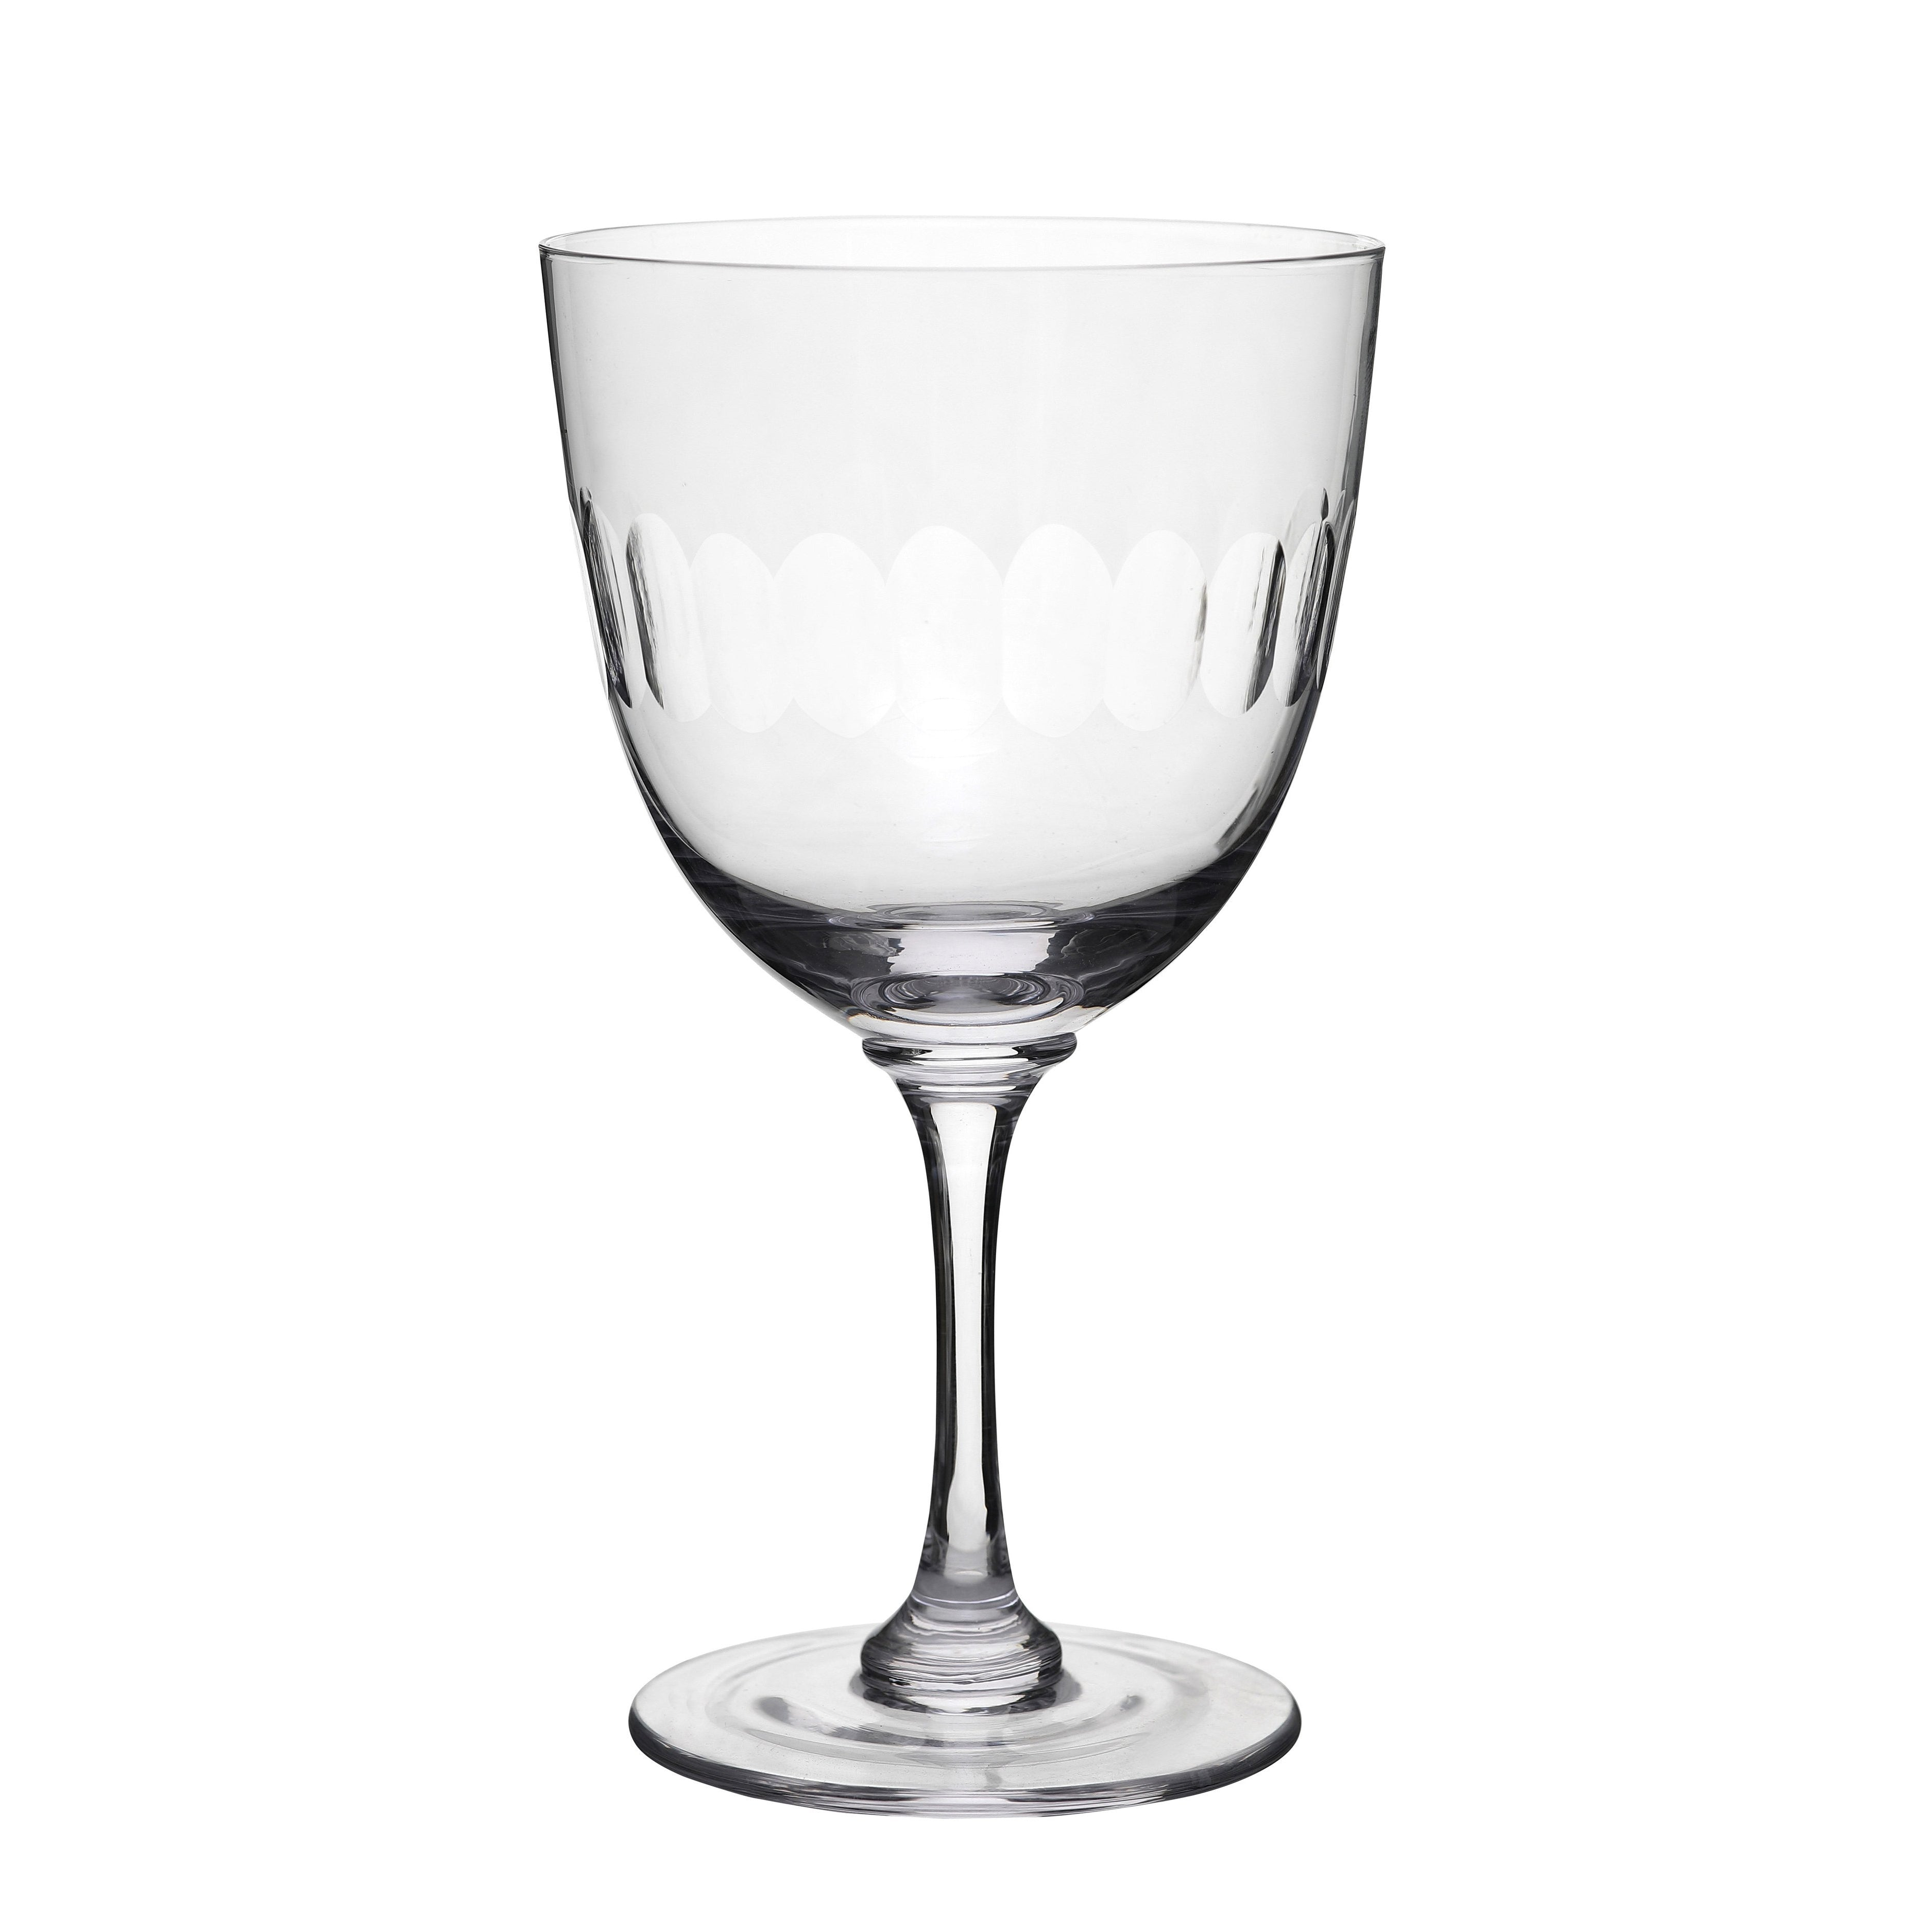 WINE GLASSES WITHLENS SET OF 6